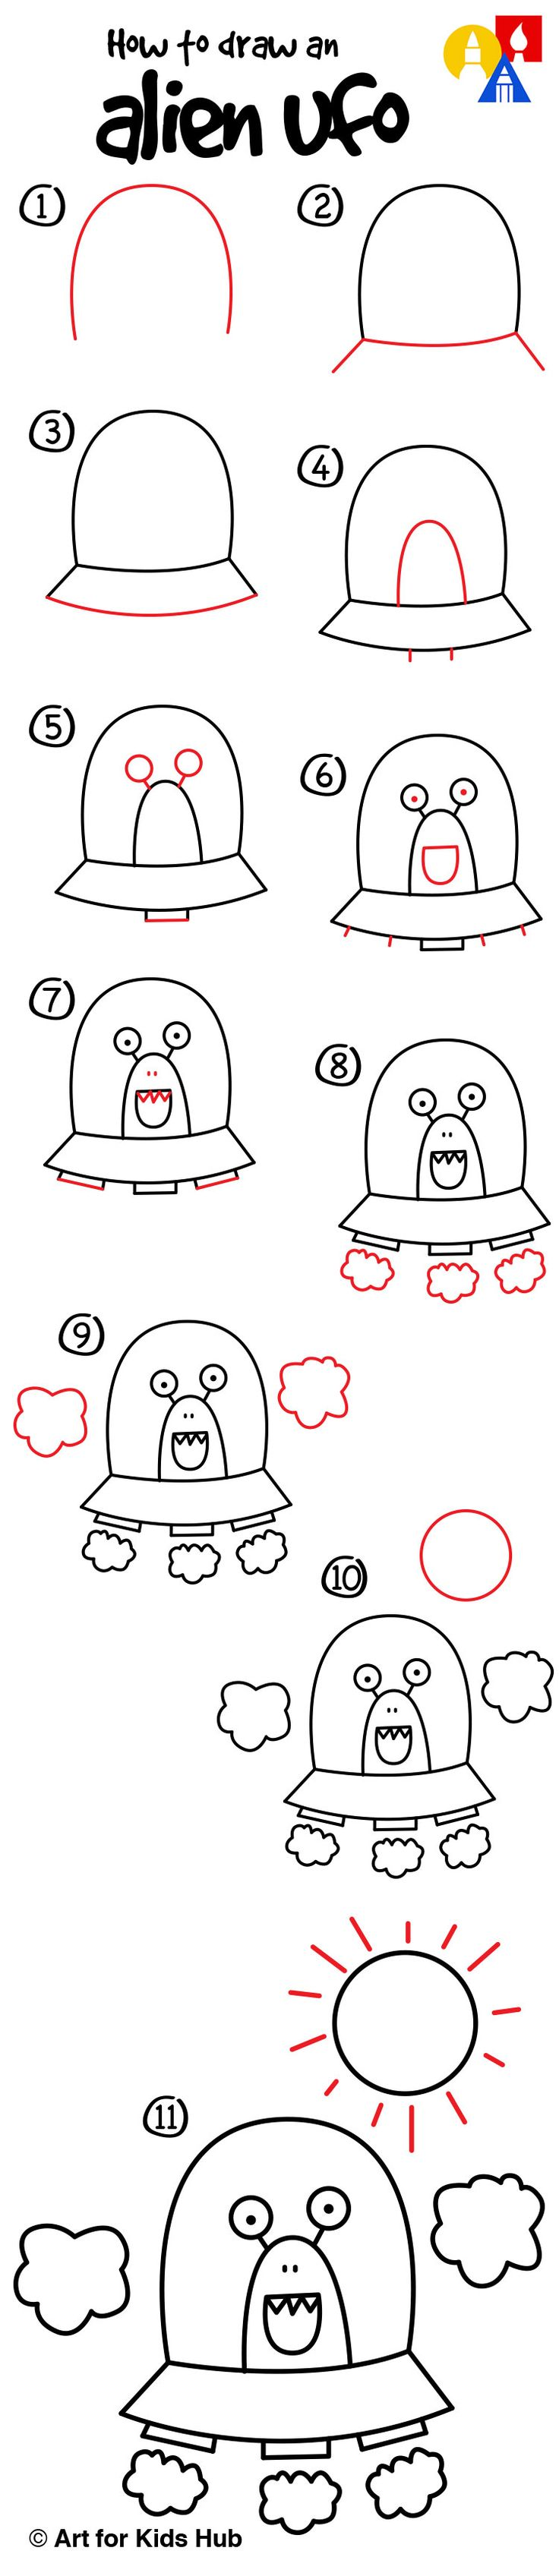 Bathroom drawing for kids - How To Draw An Alien Ufo Young Artists Art For Kids Hub